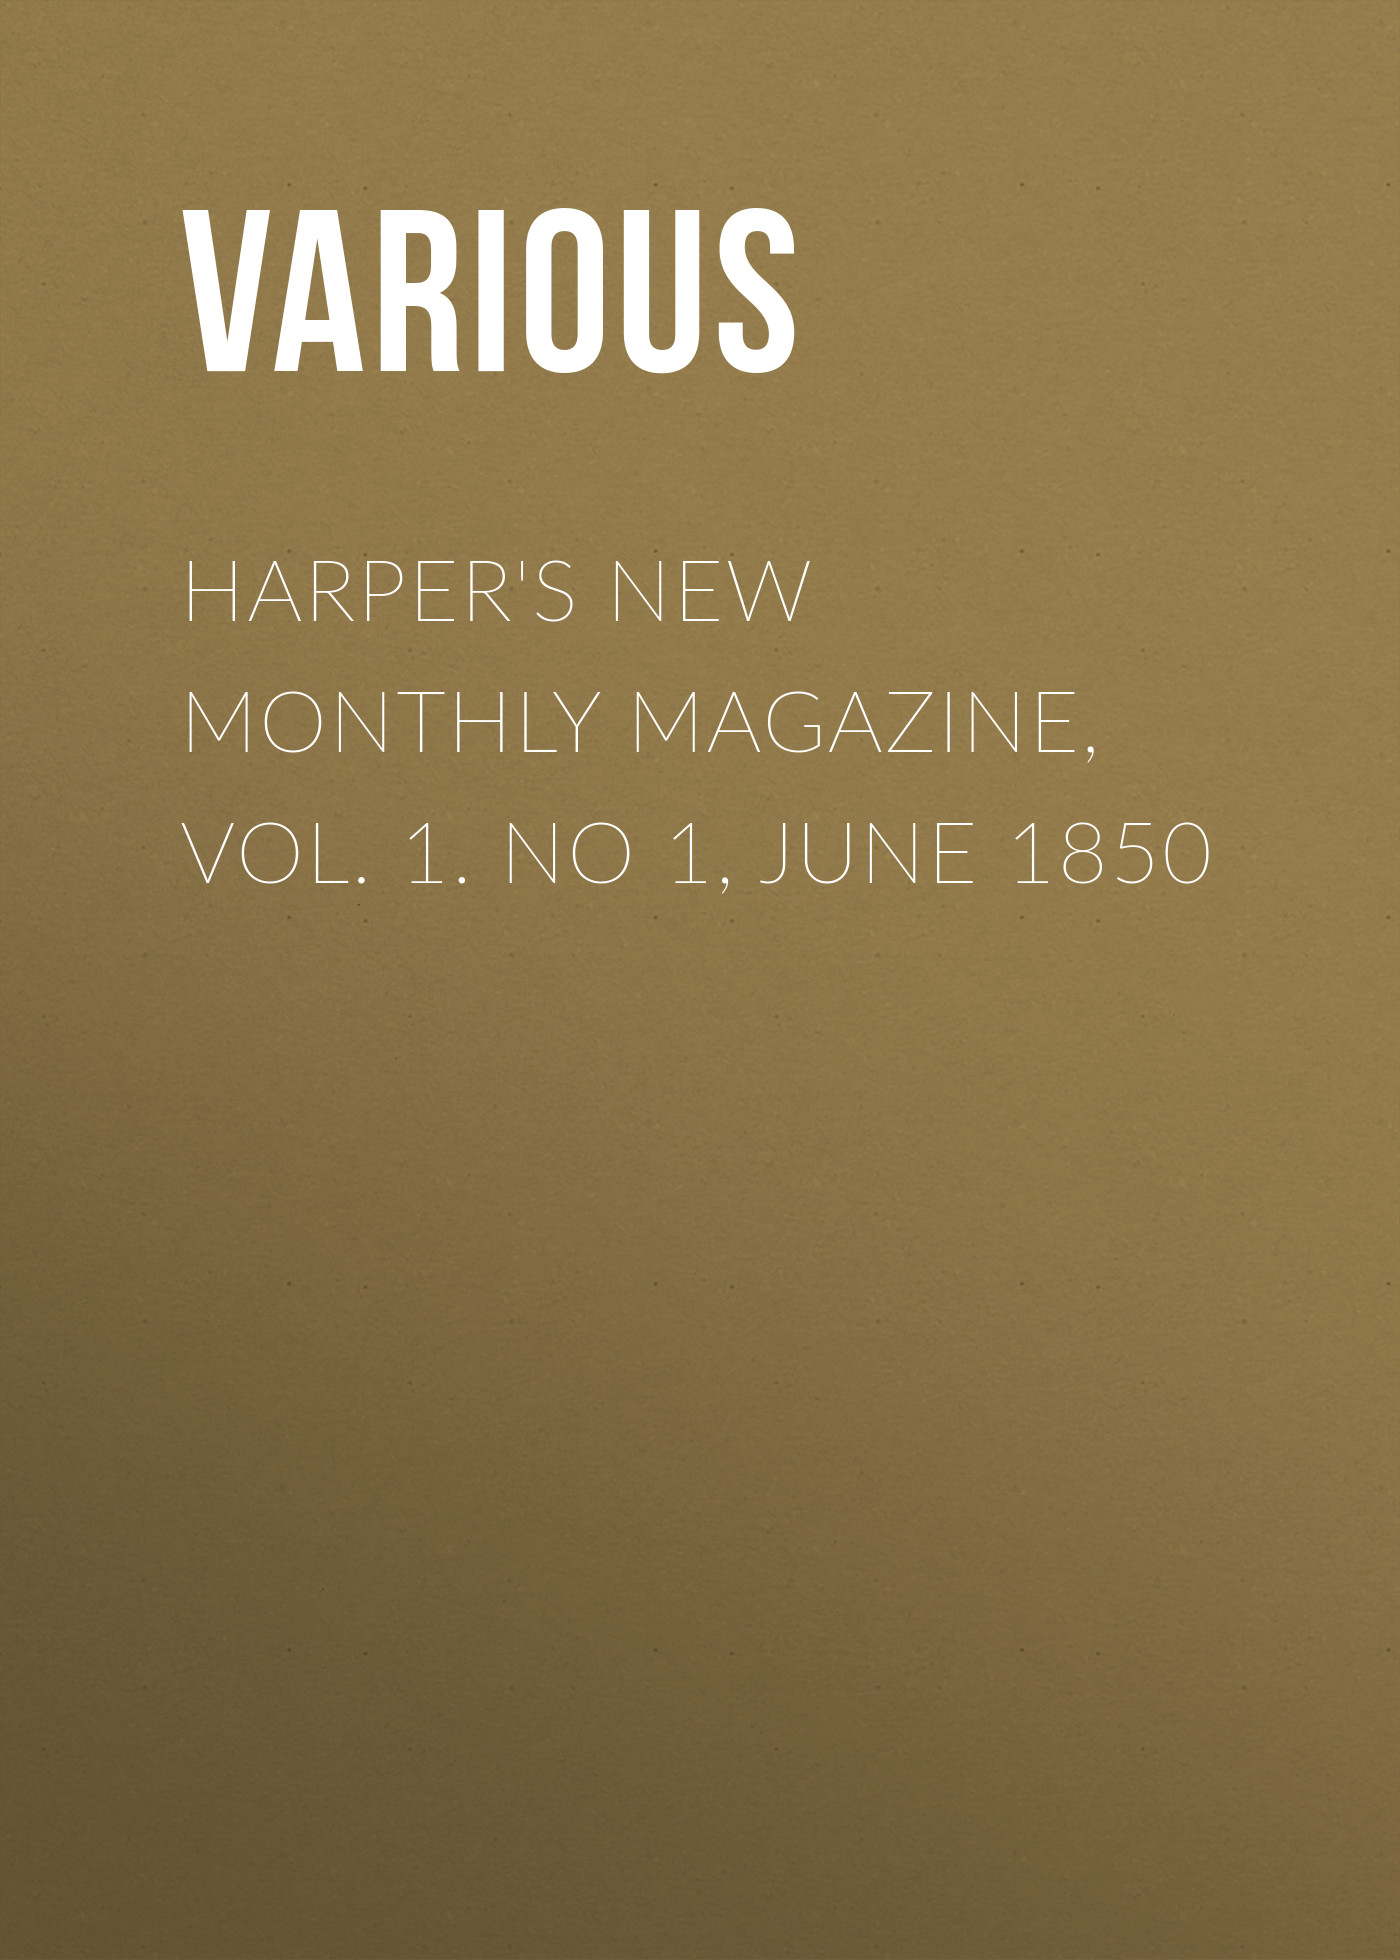 Various Harper's New Monthly Magazine, Vol. 1. No 1, June 1850 various beadle s dime song book no 1